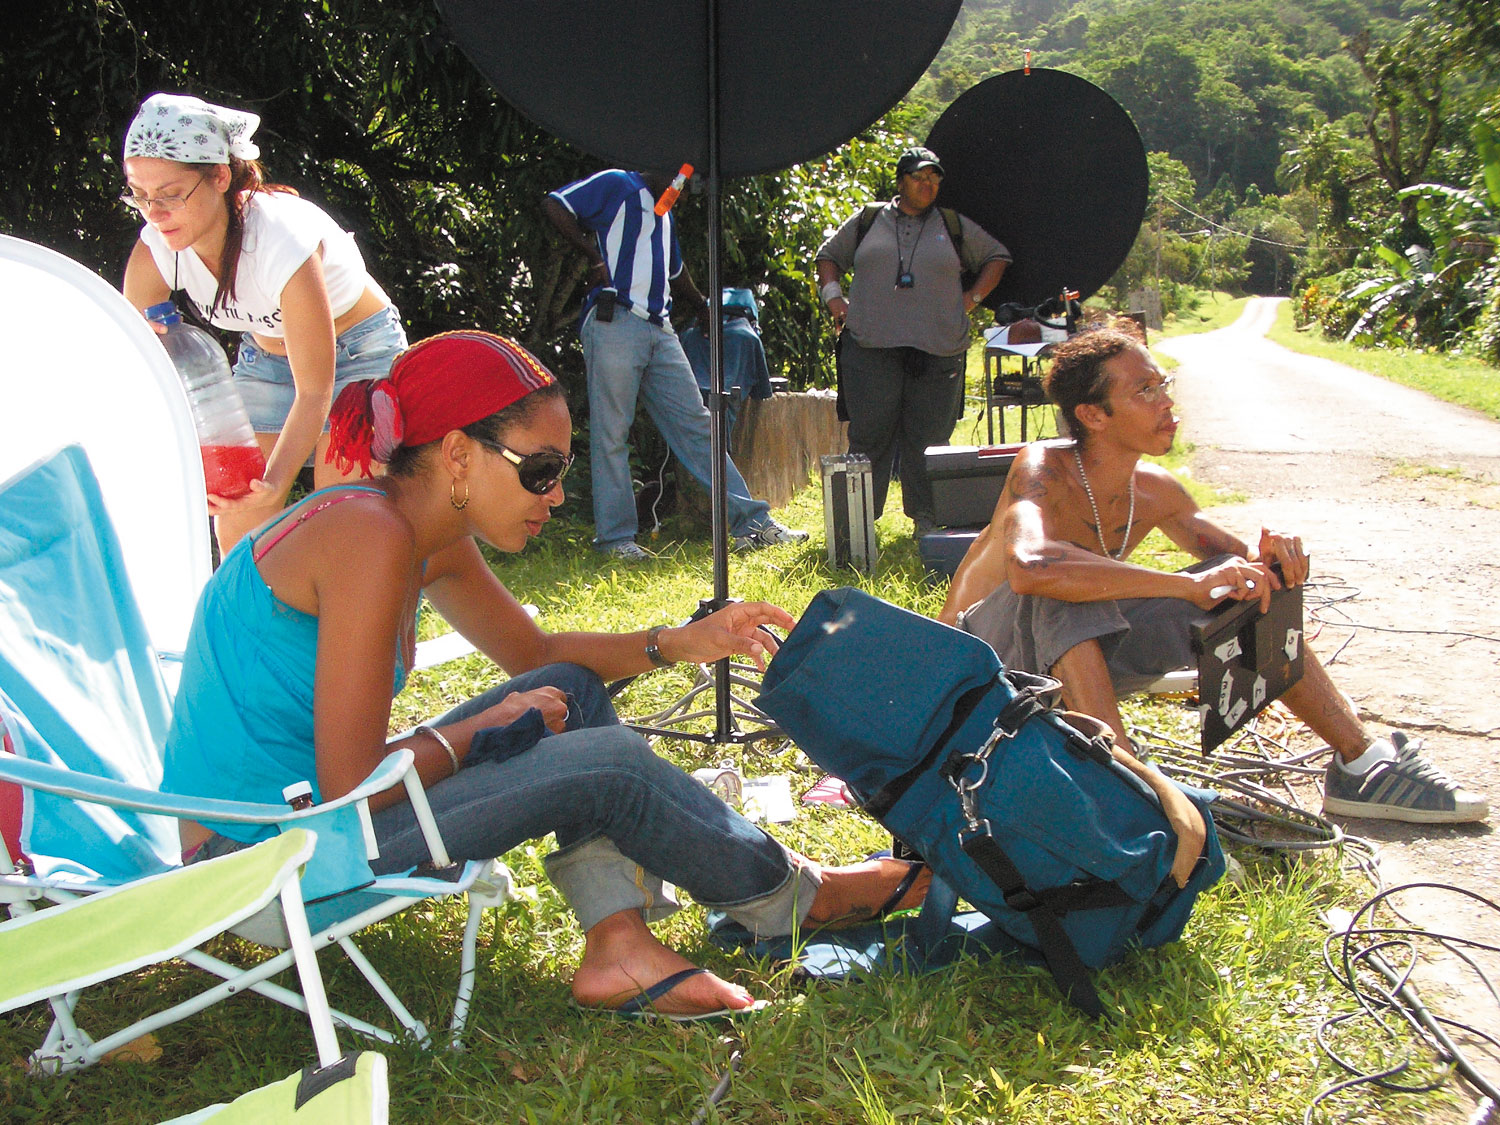 Joebell and America director Asha Lovelace (front left) with crew members, on location in Lopinot. Photograph by Georgia Popplewell